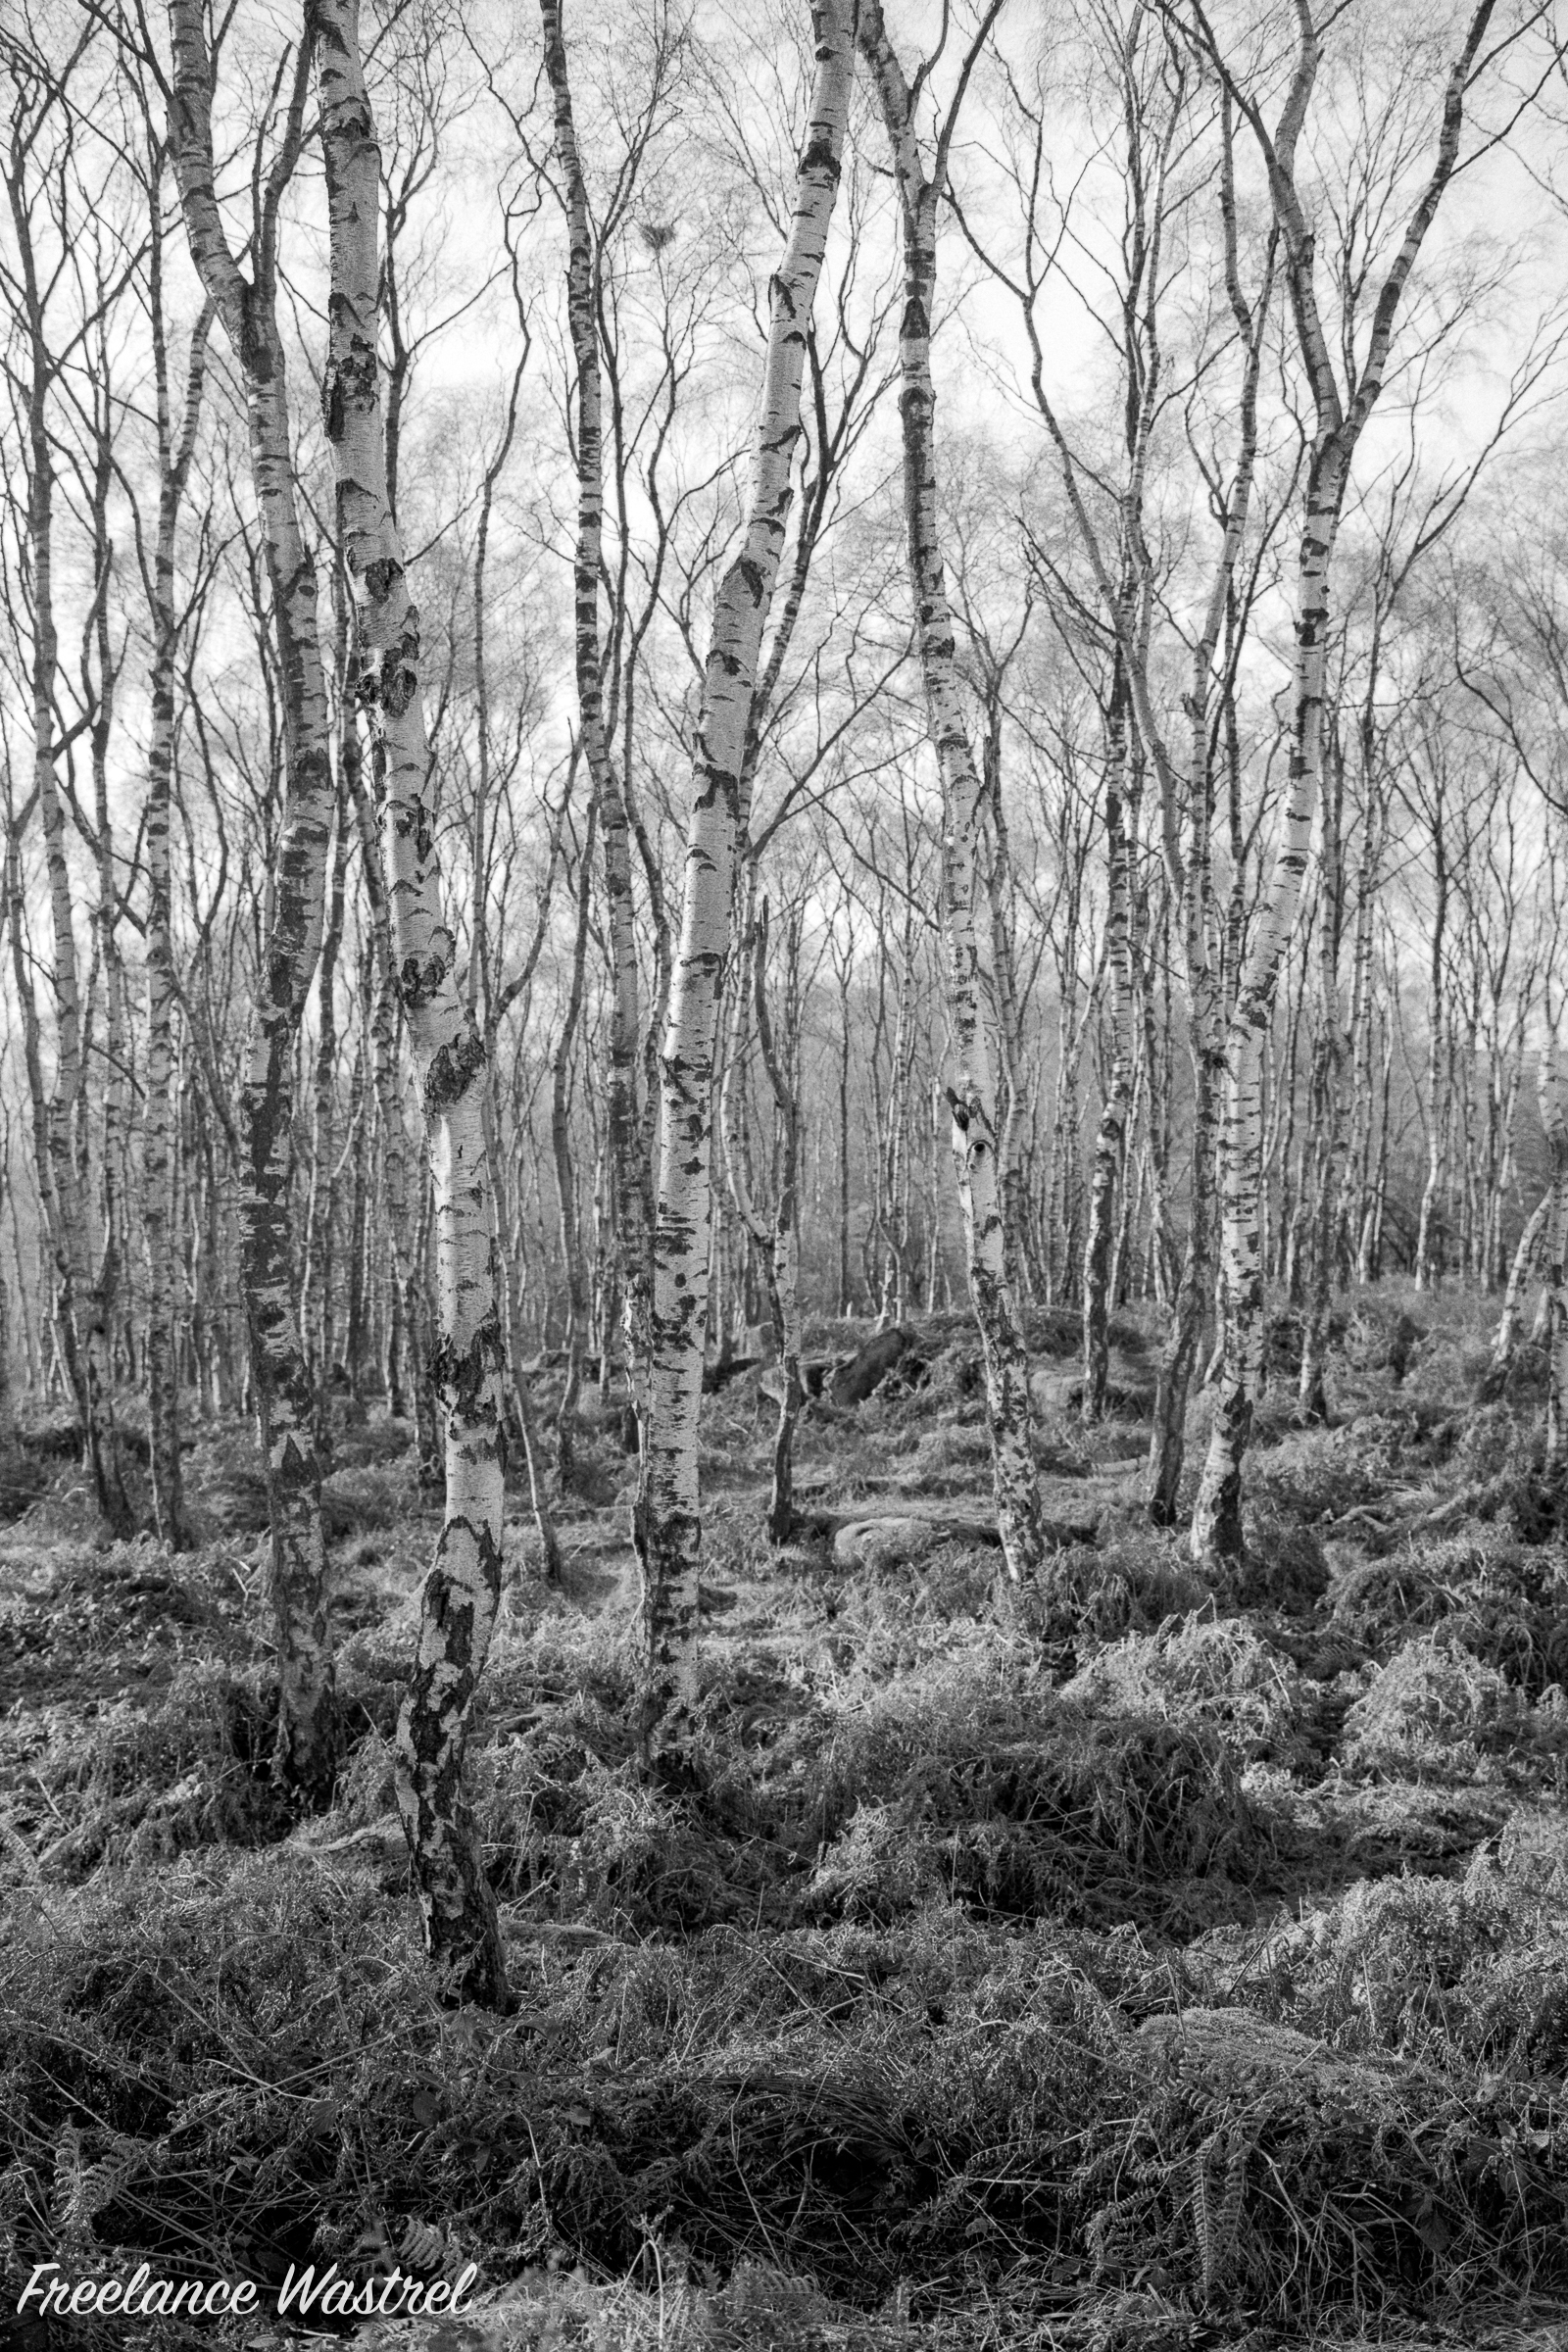 Silver Birches, Jack Flat, January 2020